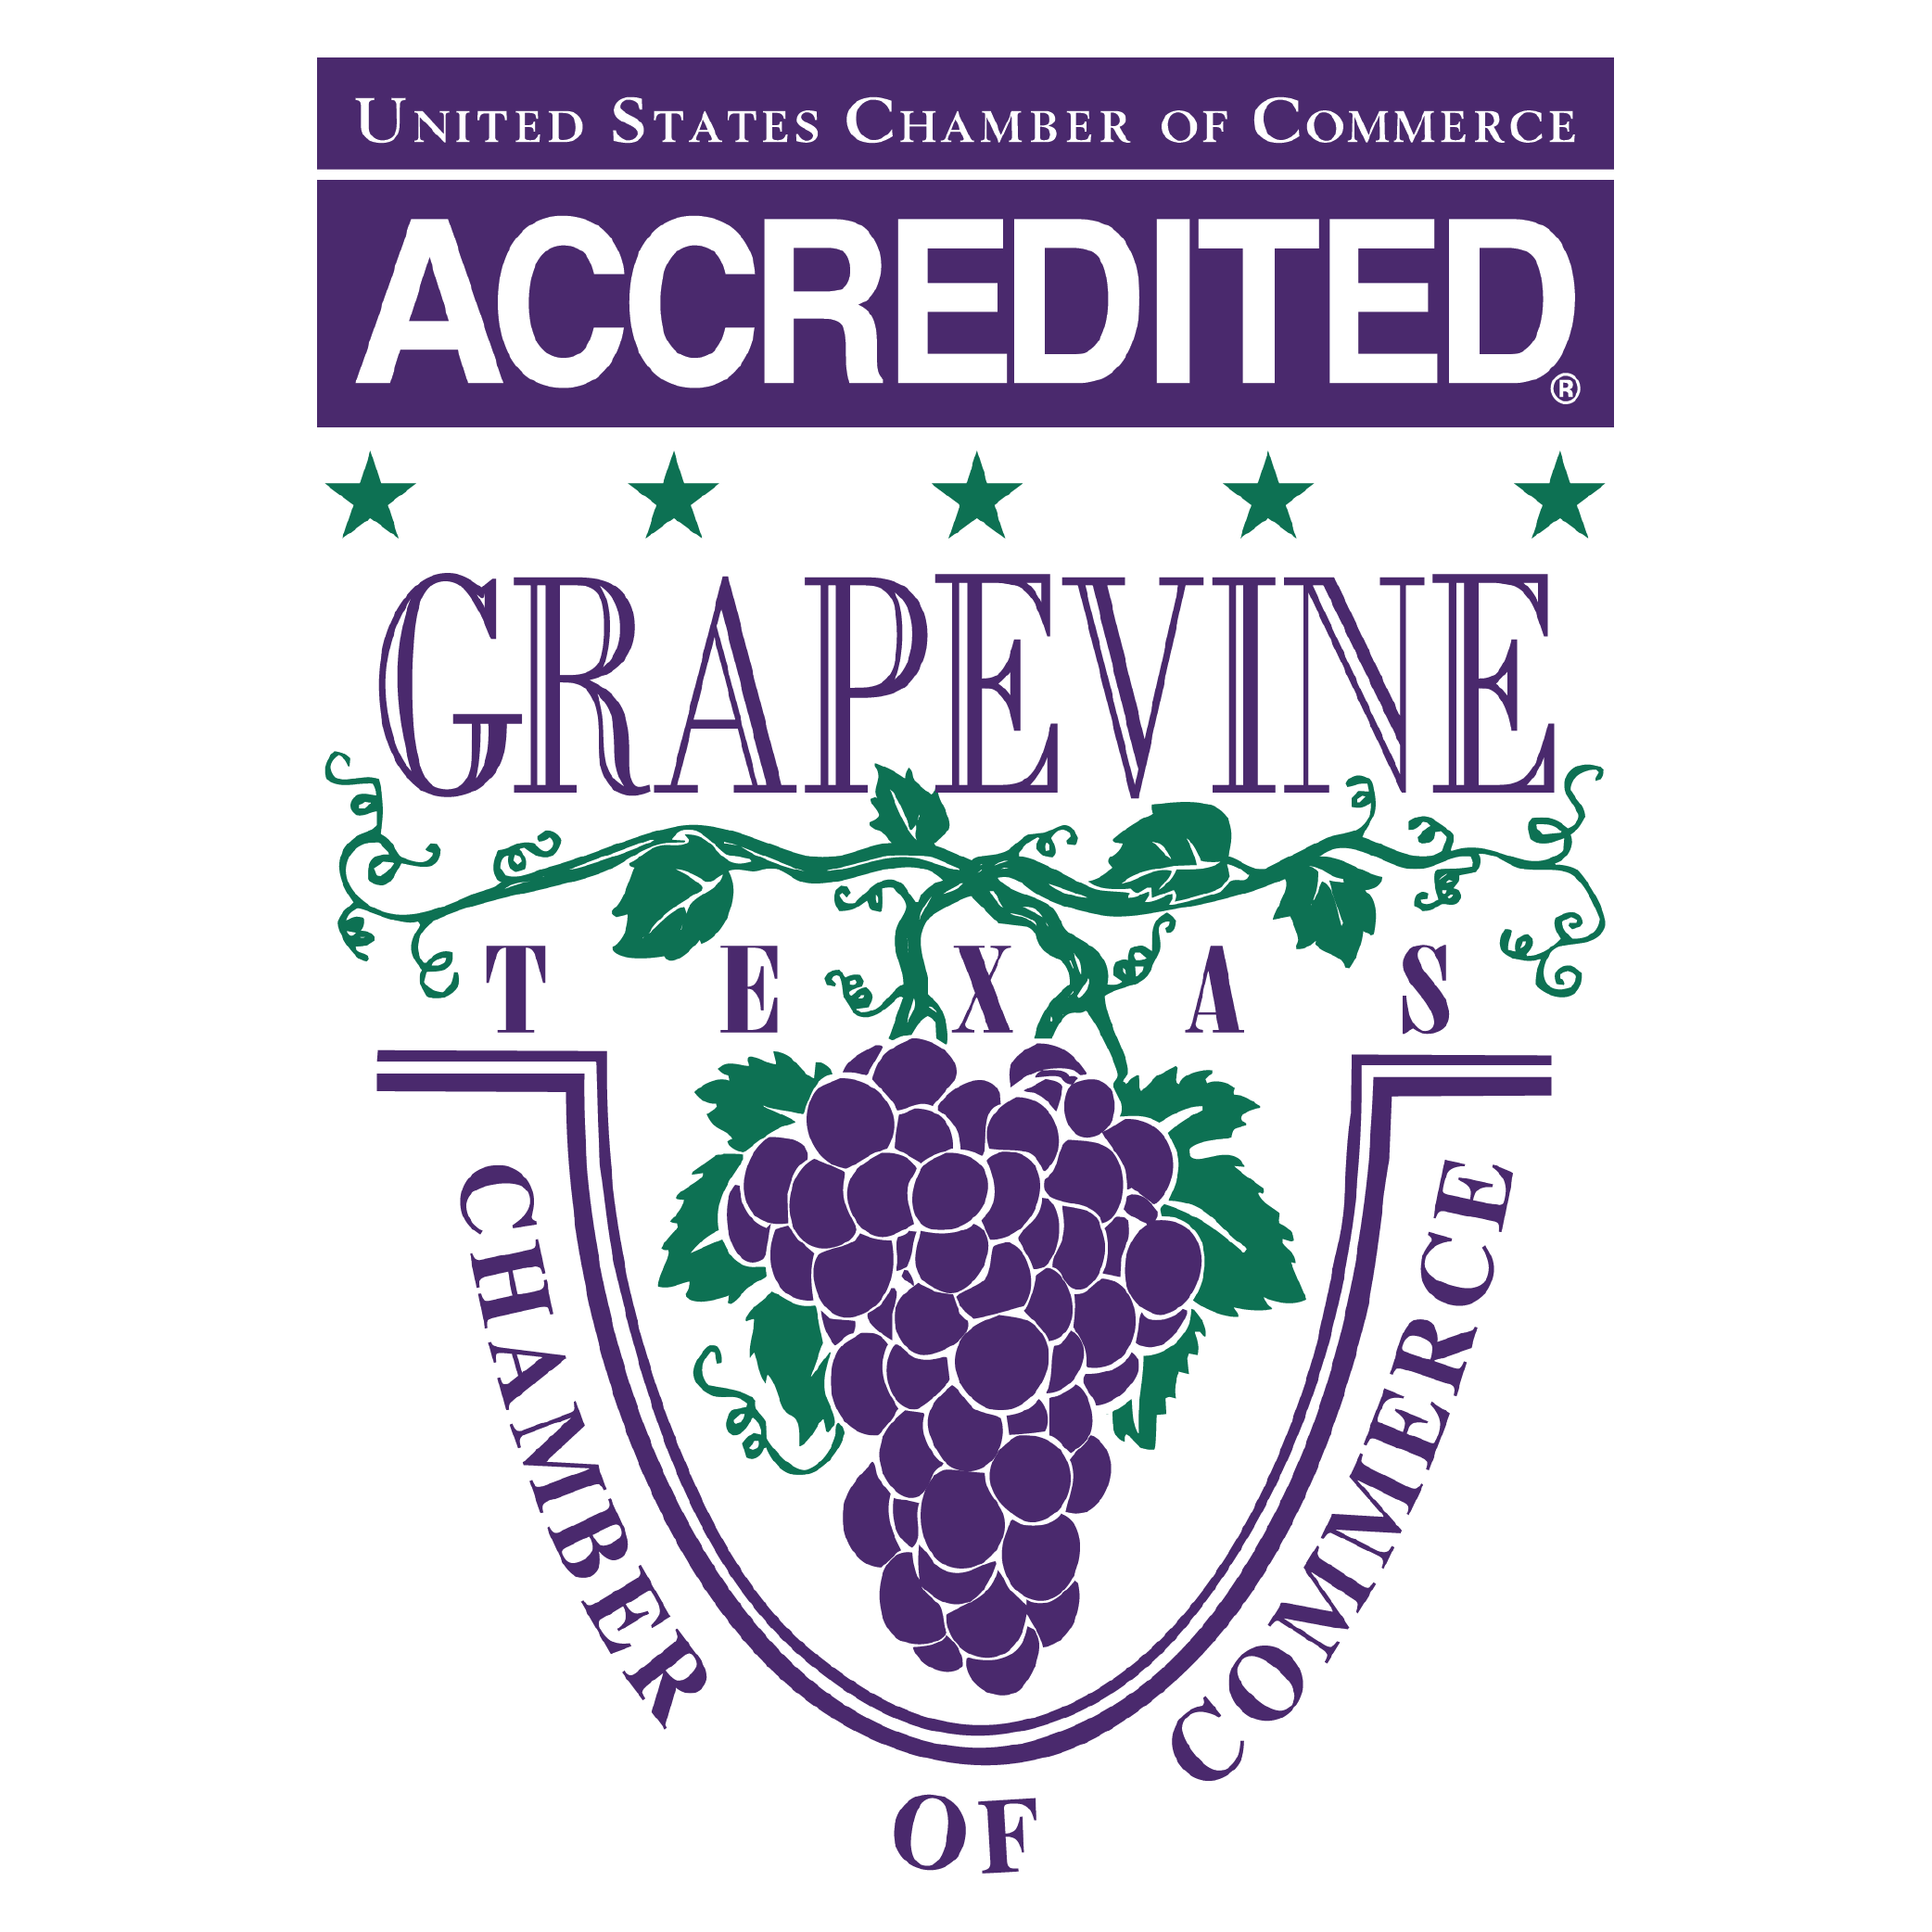 GrapevineChamber-01.png